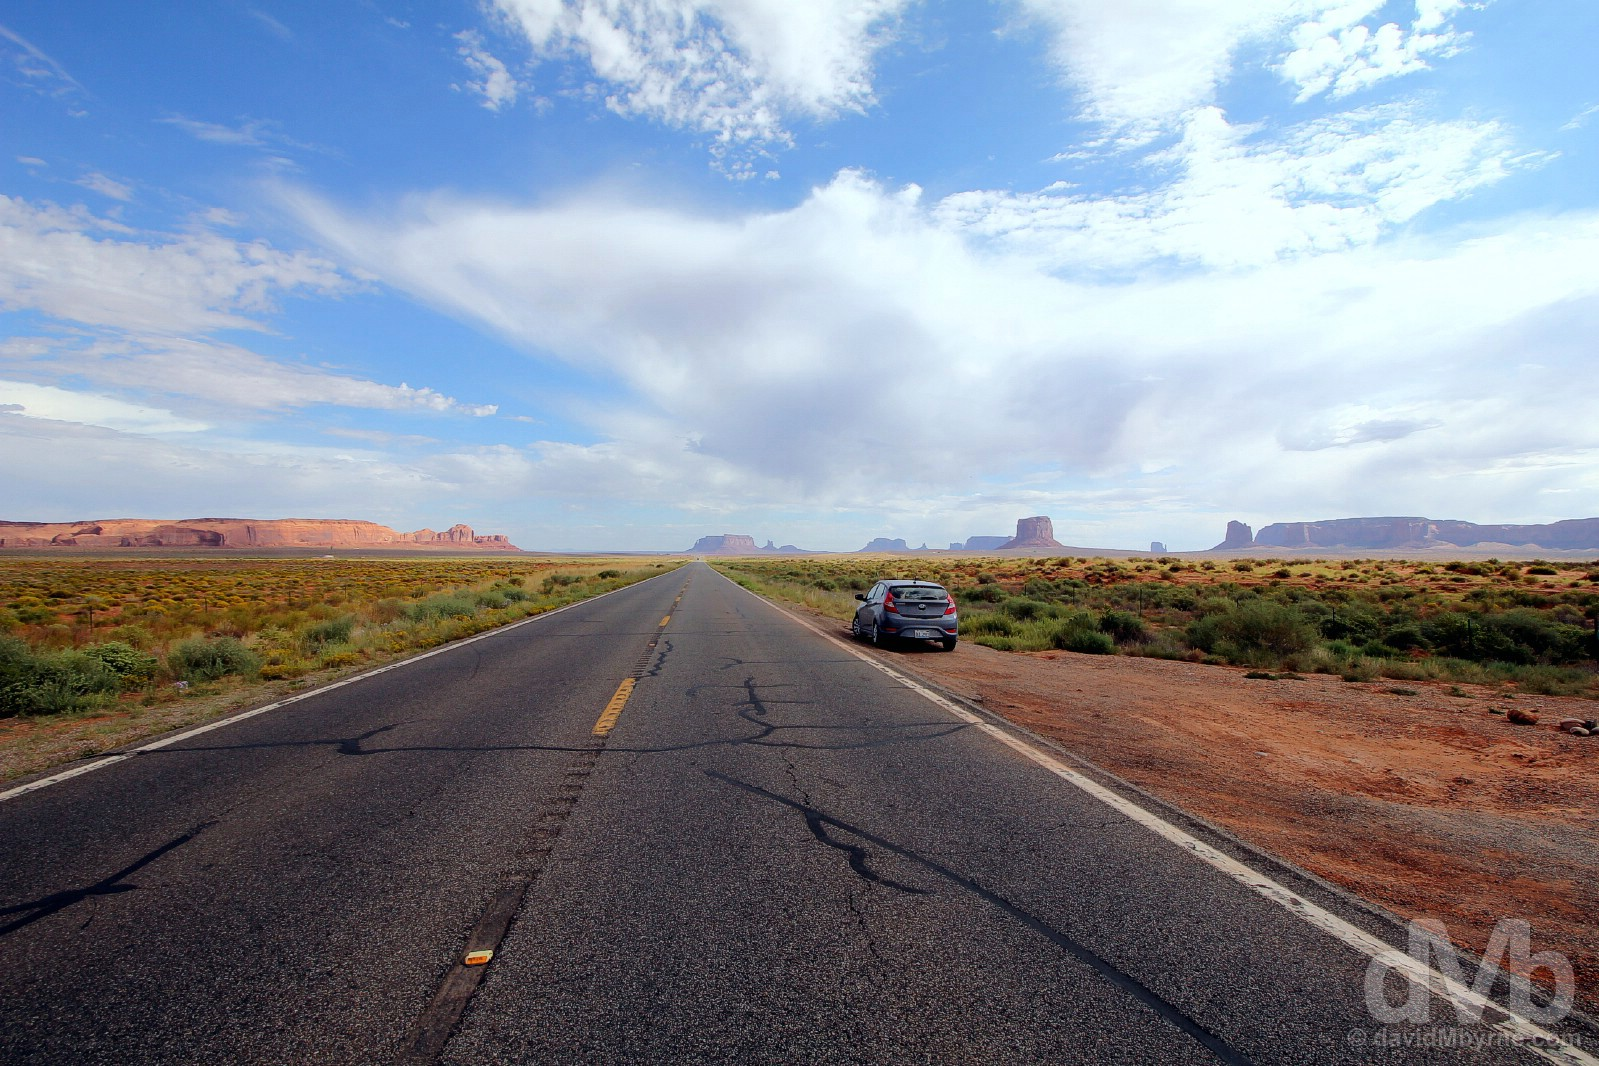 On US Route 163 en route to Monument Valley, Navajo Nation, Arizona. September 11, 2016.